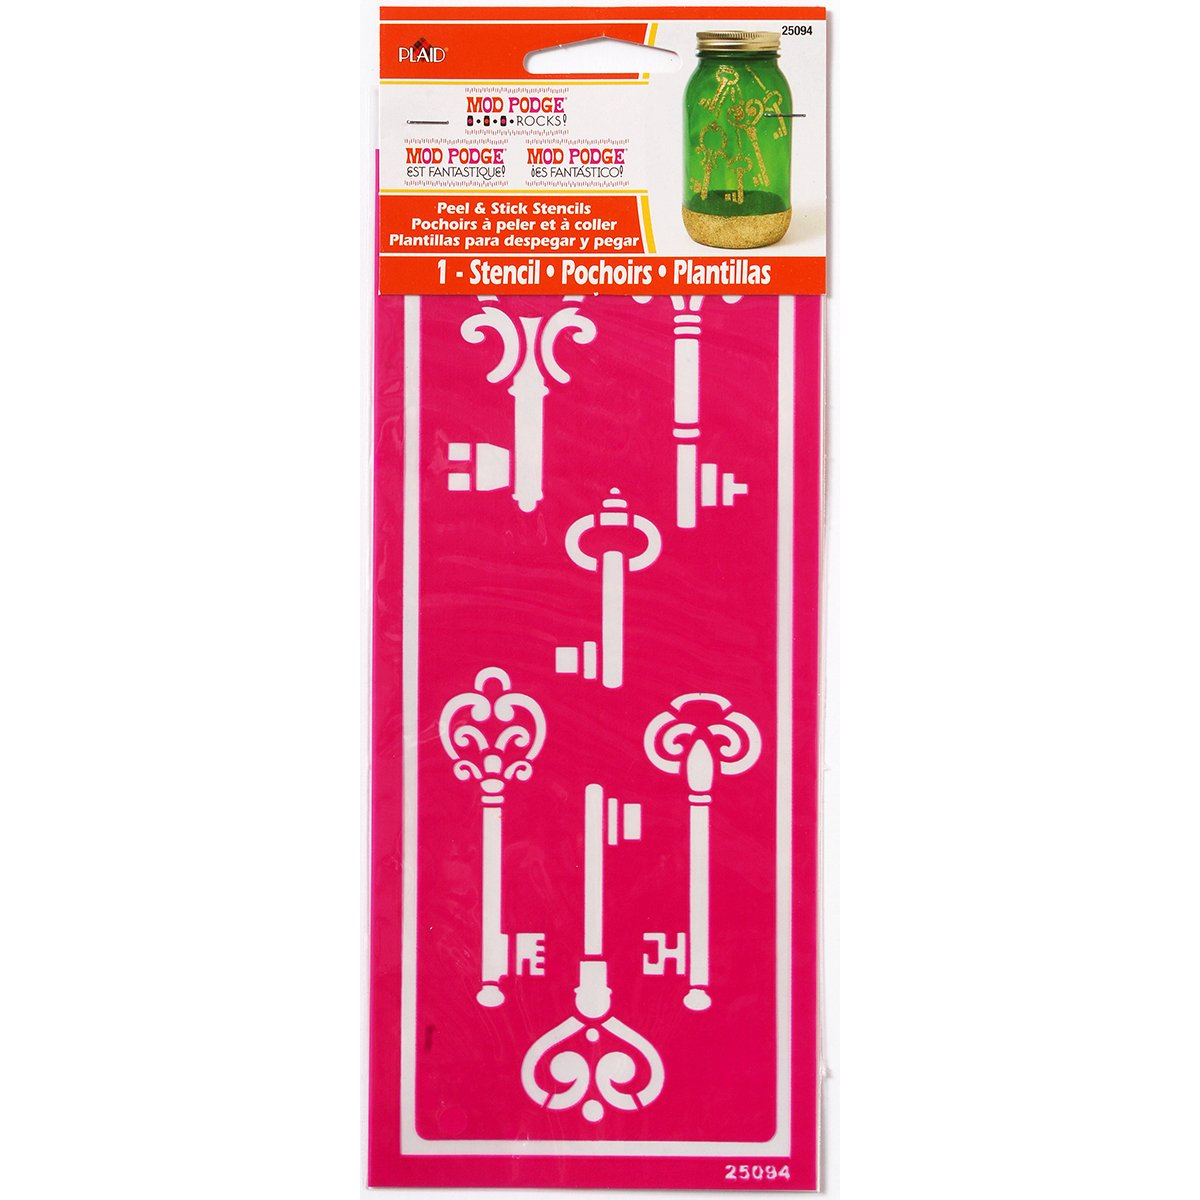 Mod Podge Peel & Stick Stencil-Skeleton Keys (並行輸入品)   B00JACI0CY